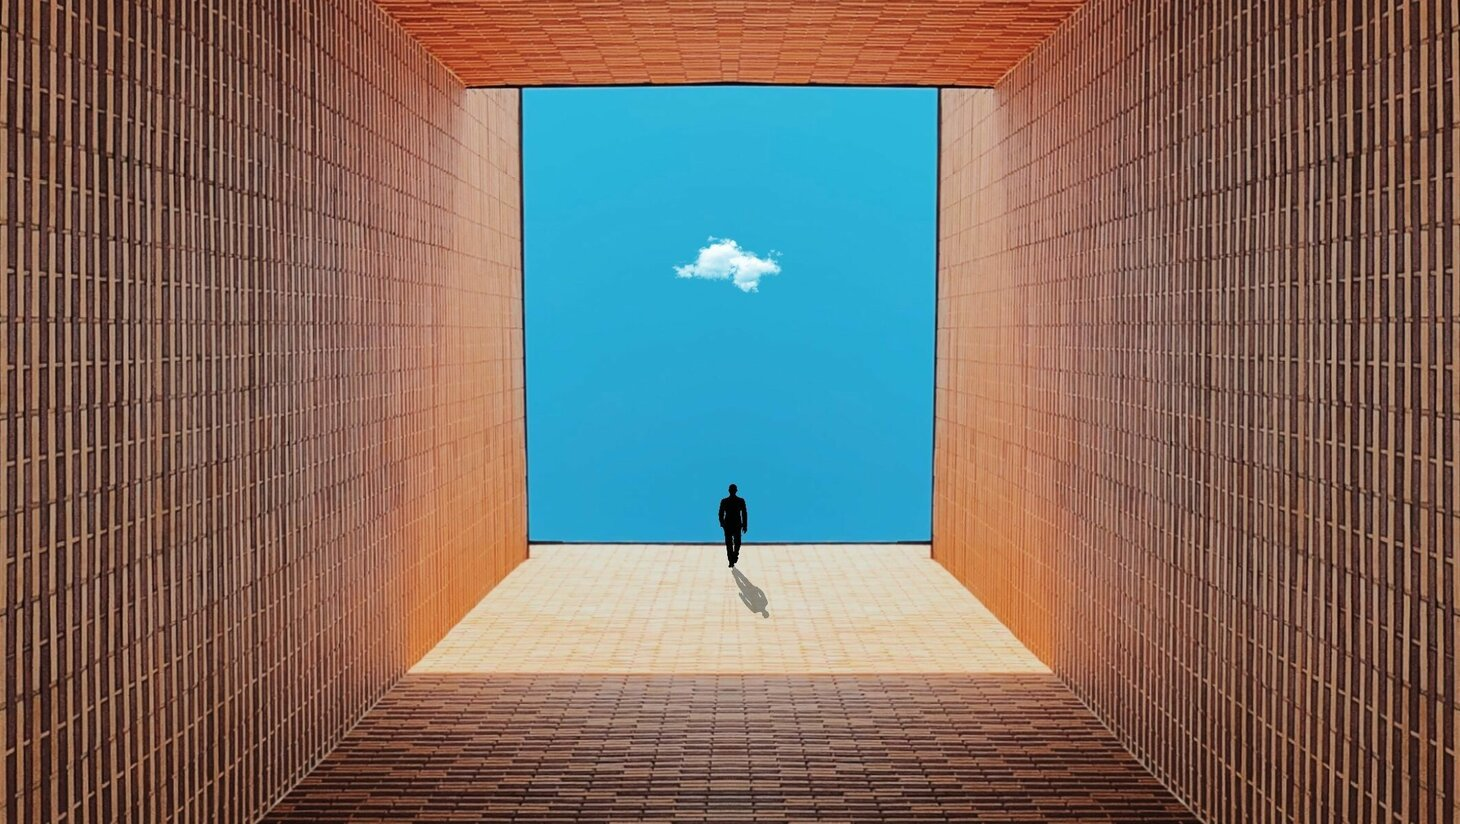 Silhouette of person on brown tunnel across white cloud scopio cb49ca70 4d6f 4988 938e d94451c89154